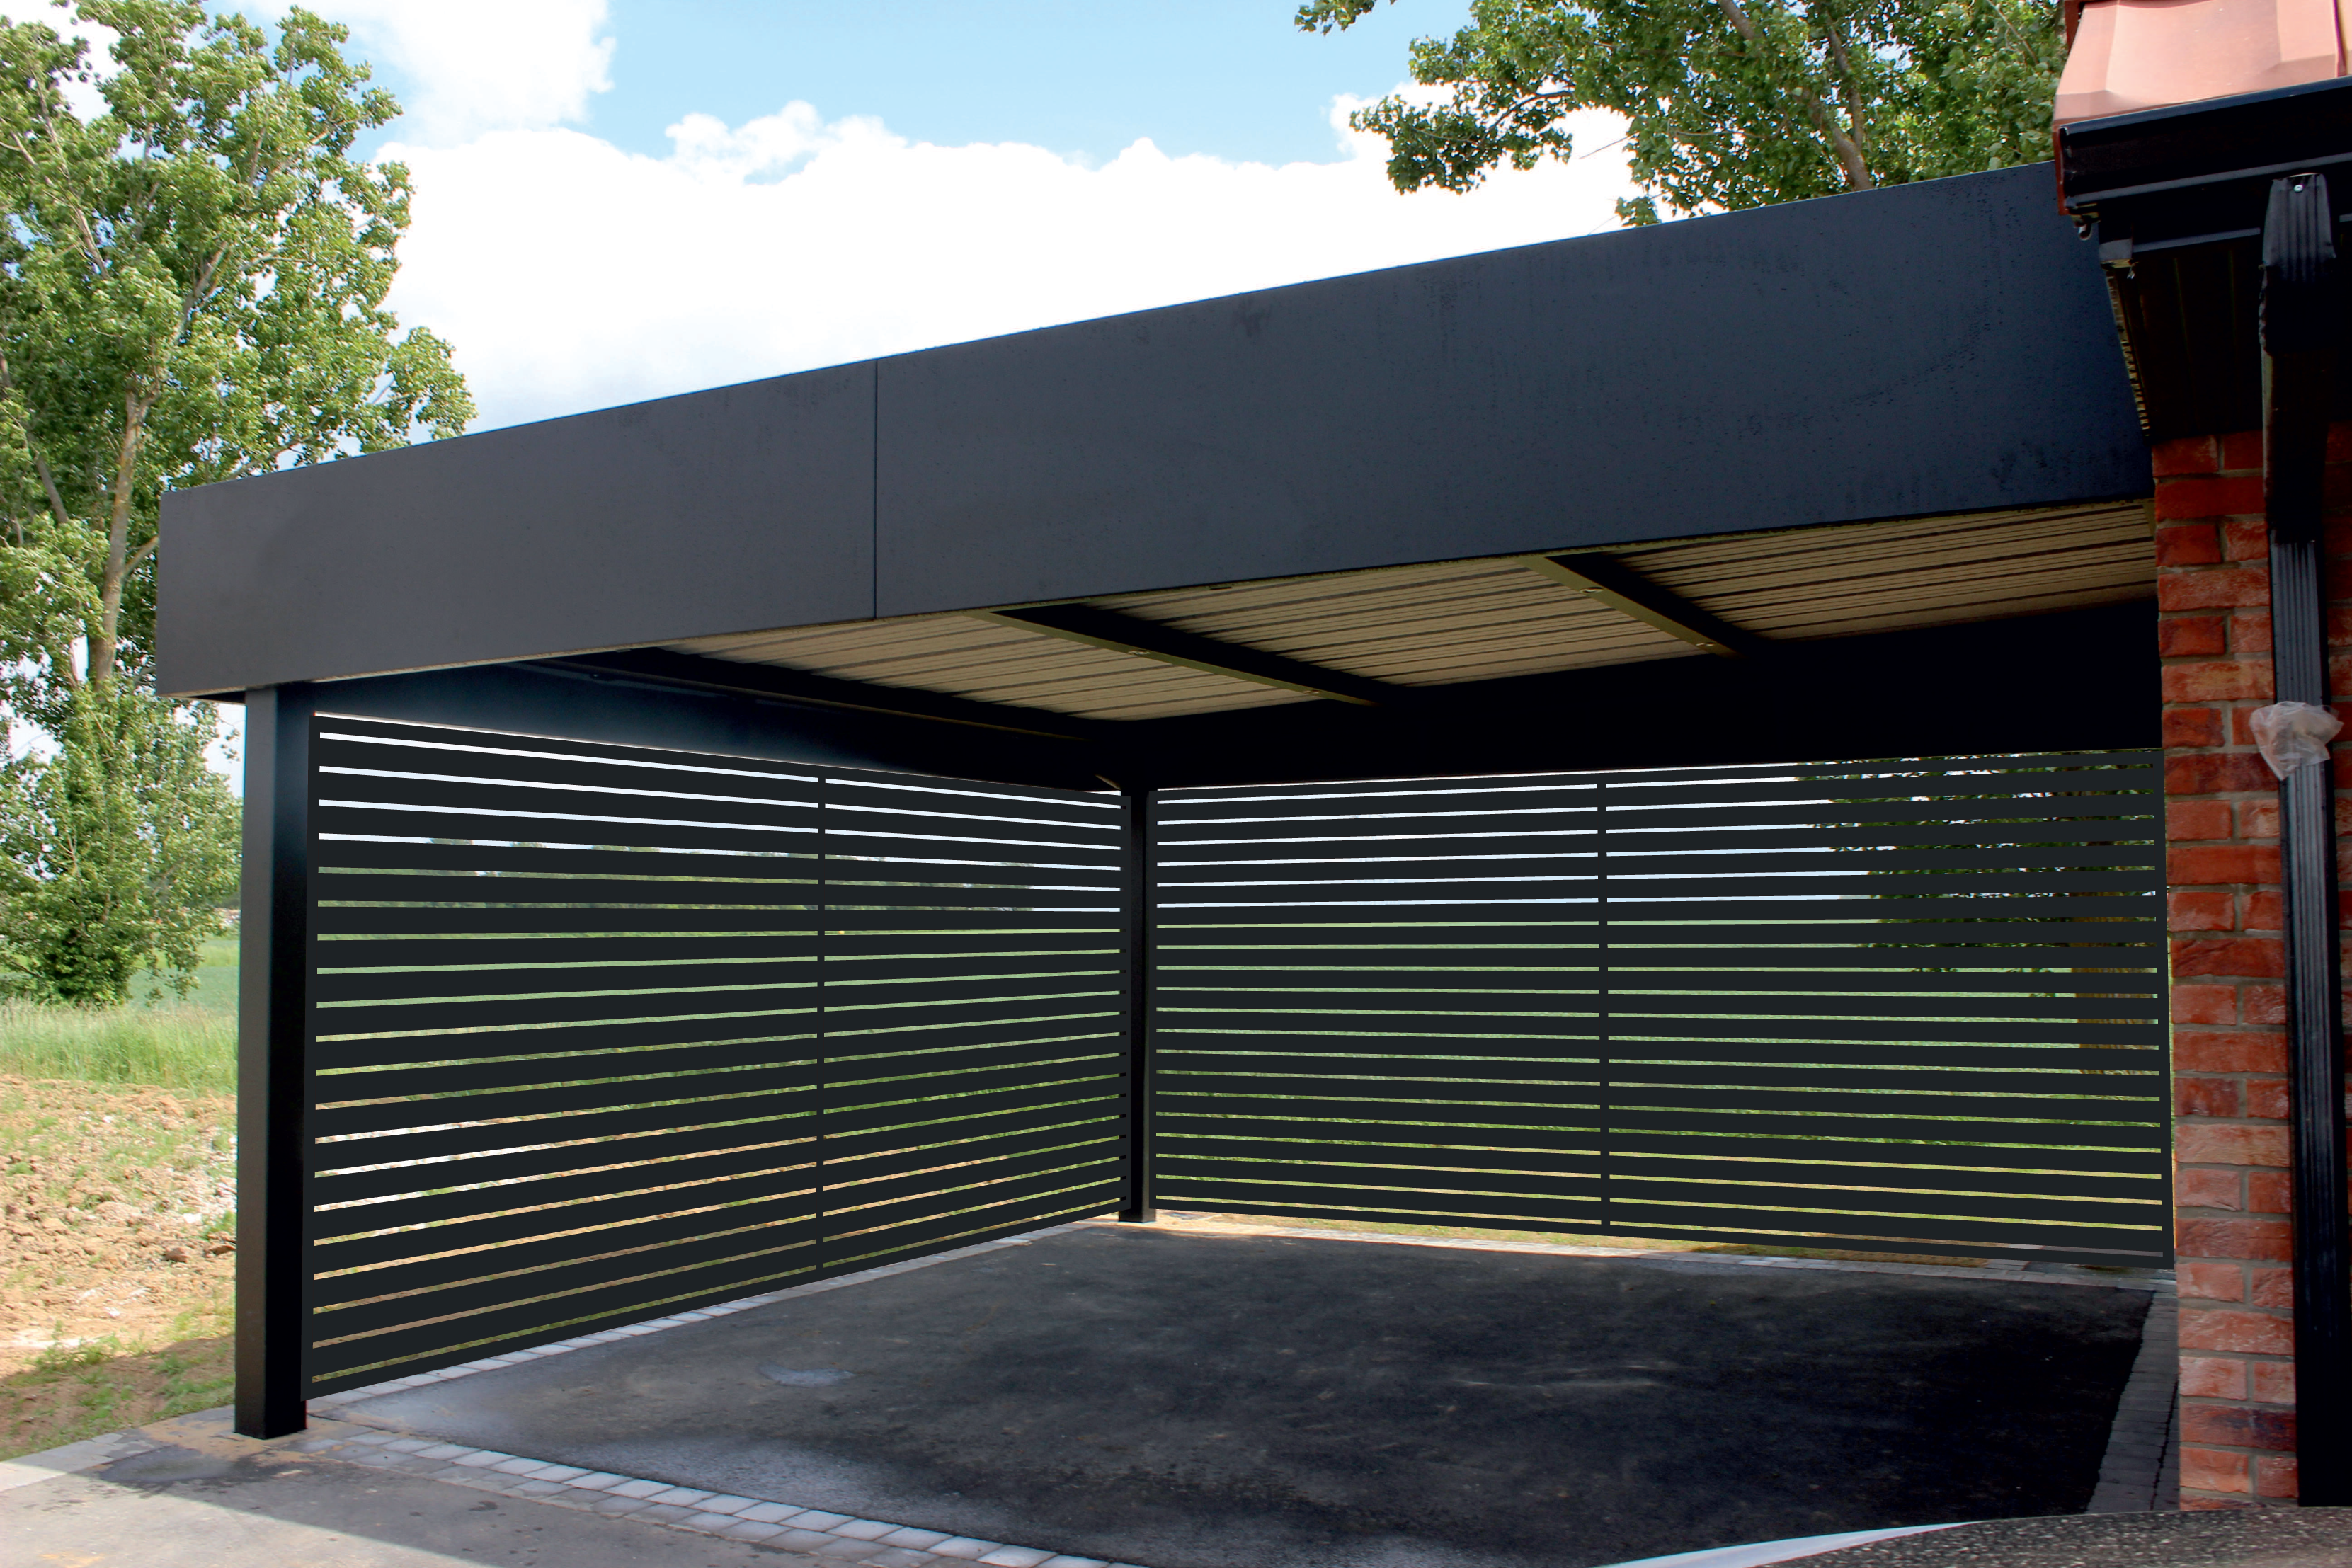 Carport Aluminium Tori Portails Carport Designs Carport